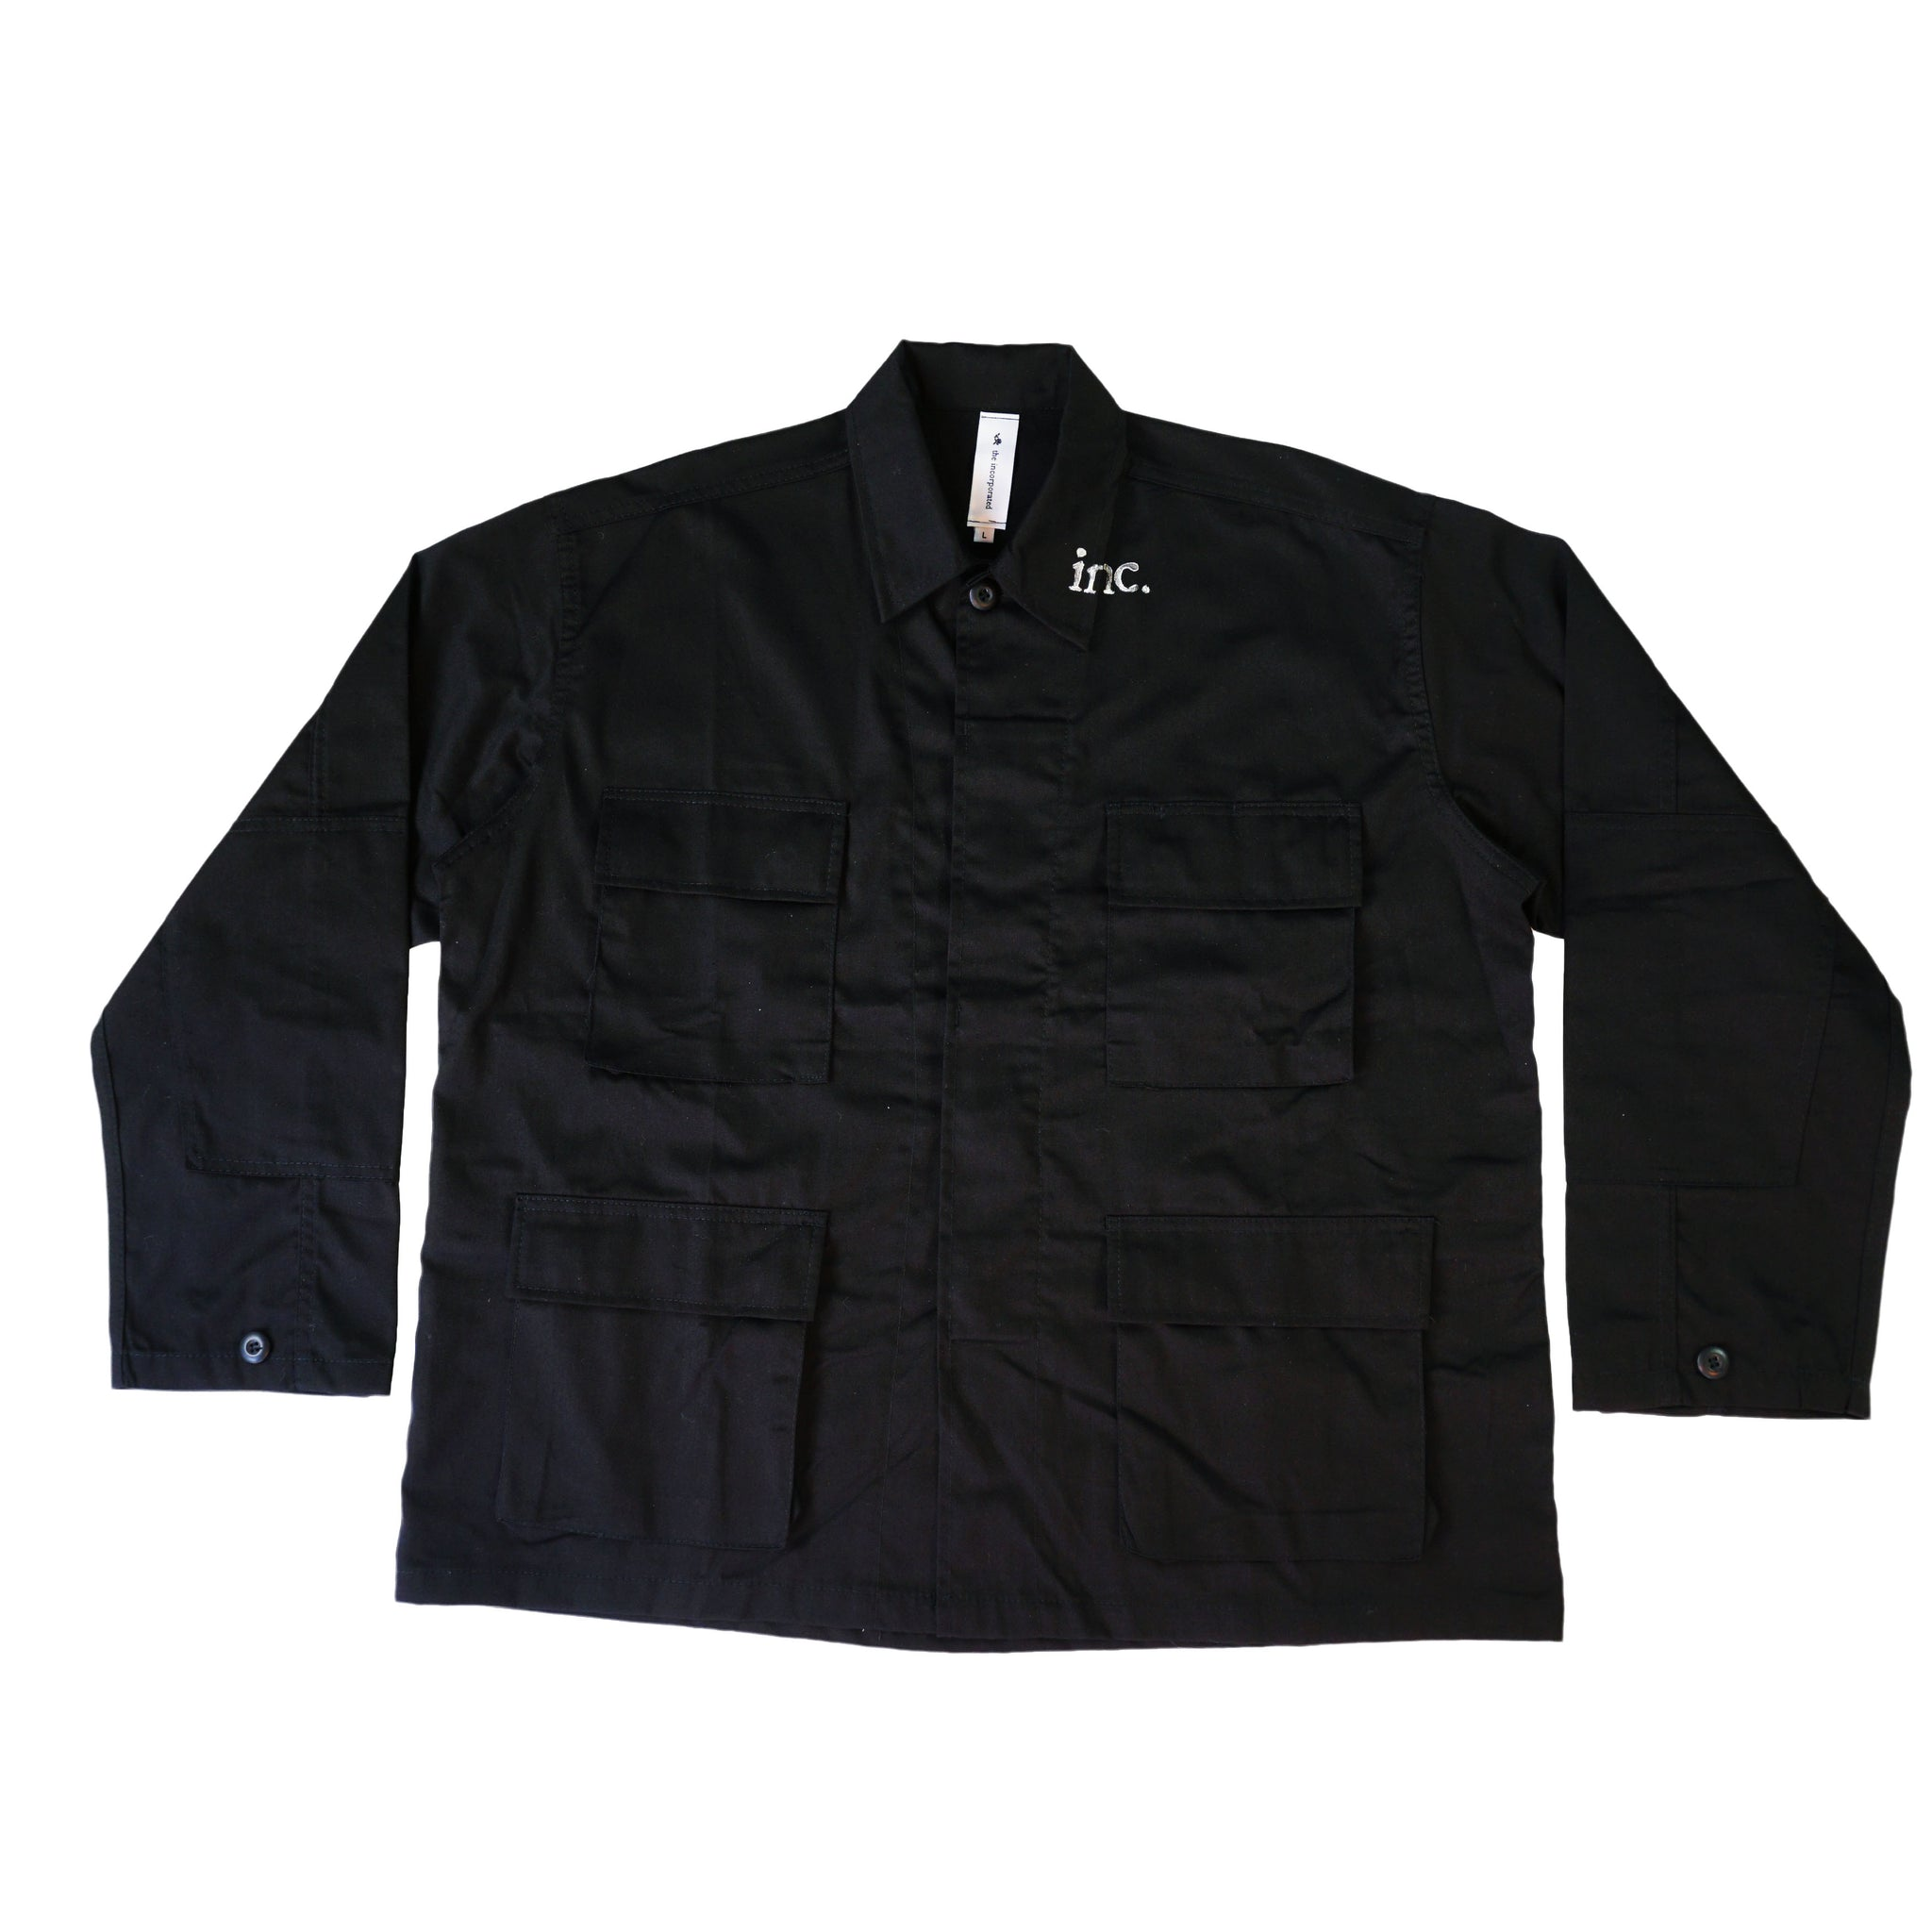 THE AGITATOR Cargo Jacket / BLACK - The Incorporated